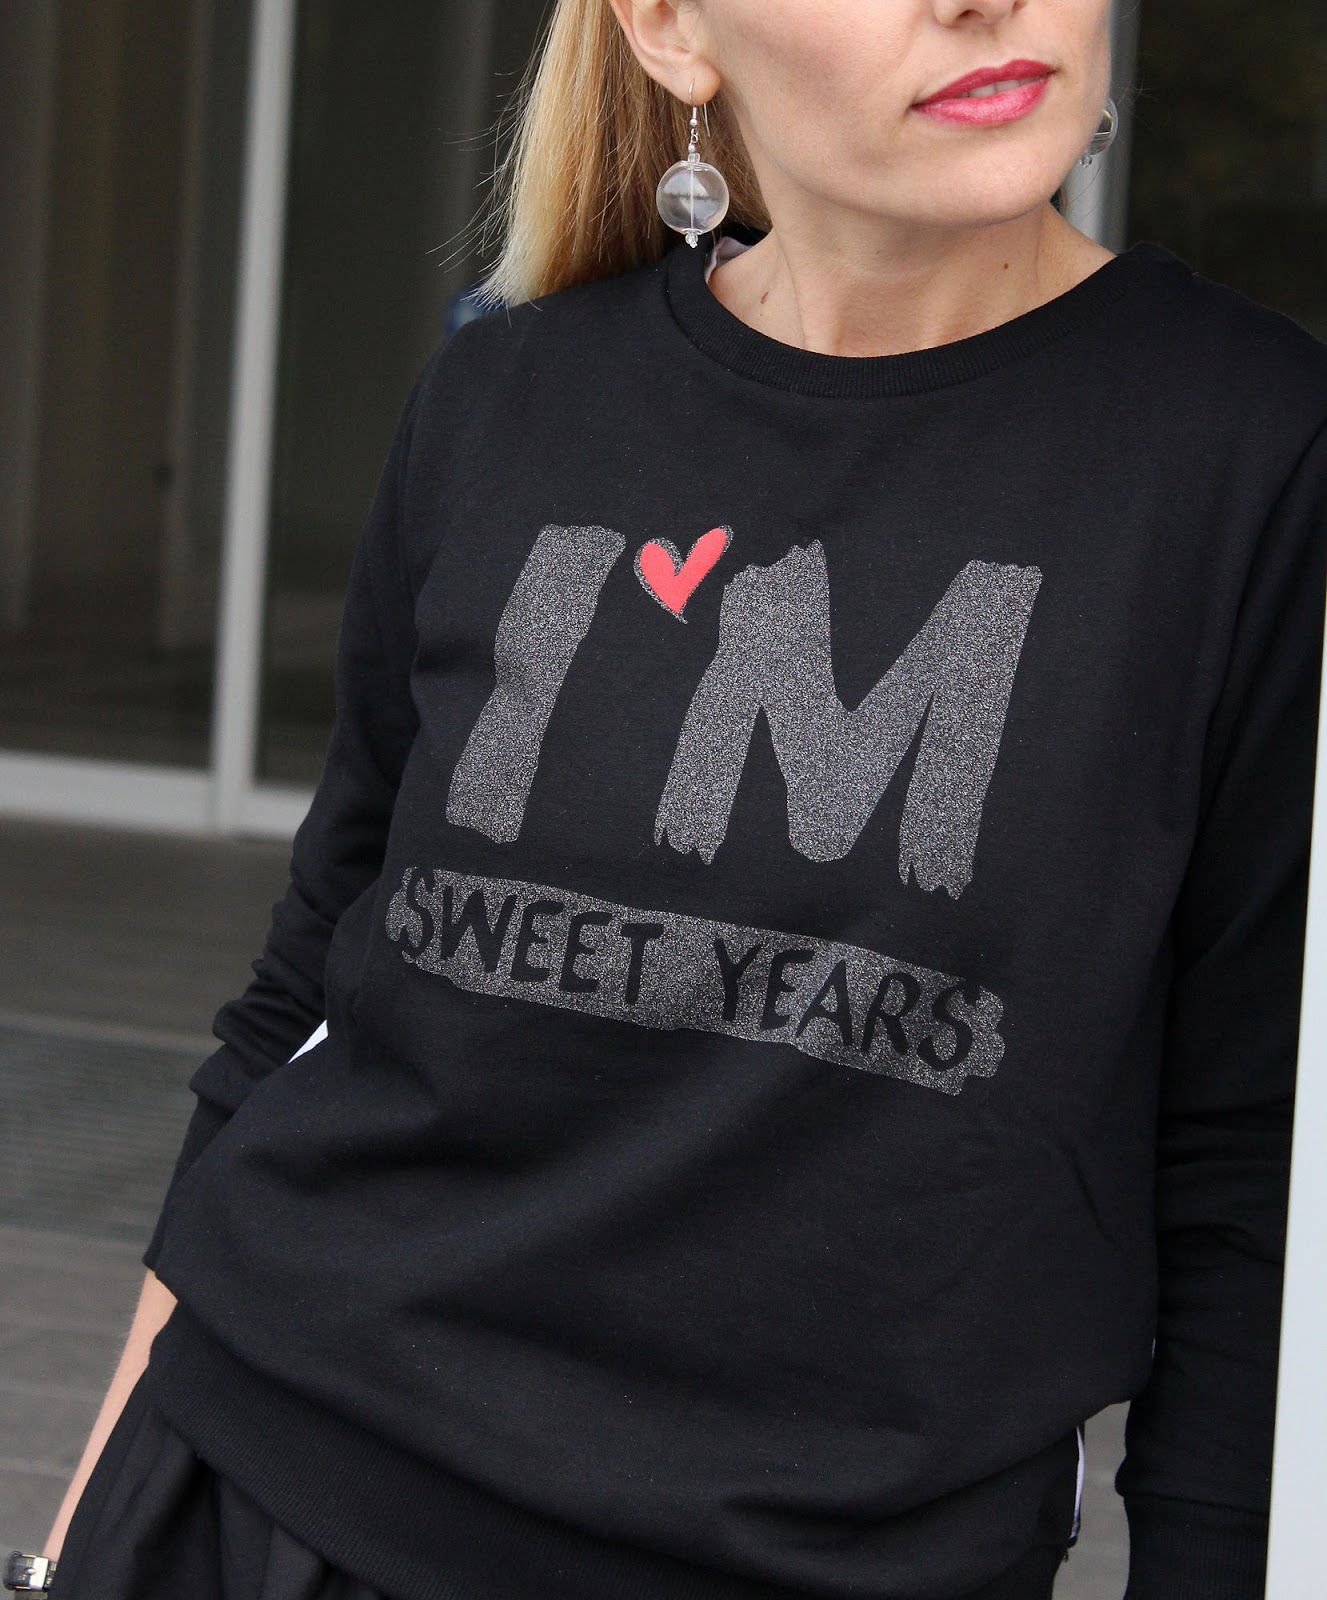 Eniwhere Fashion - Sweet Years